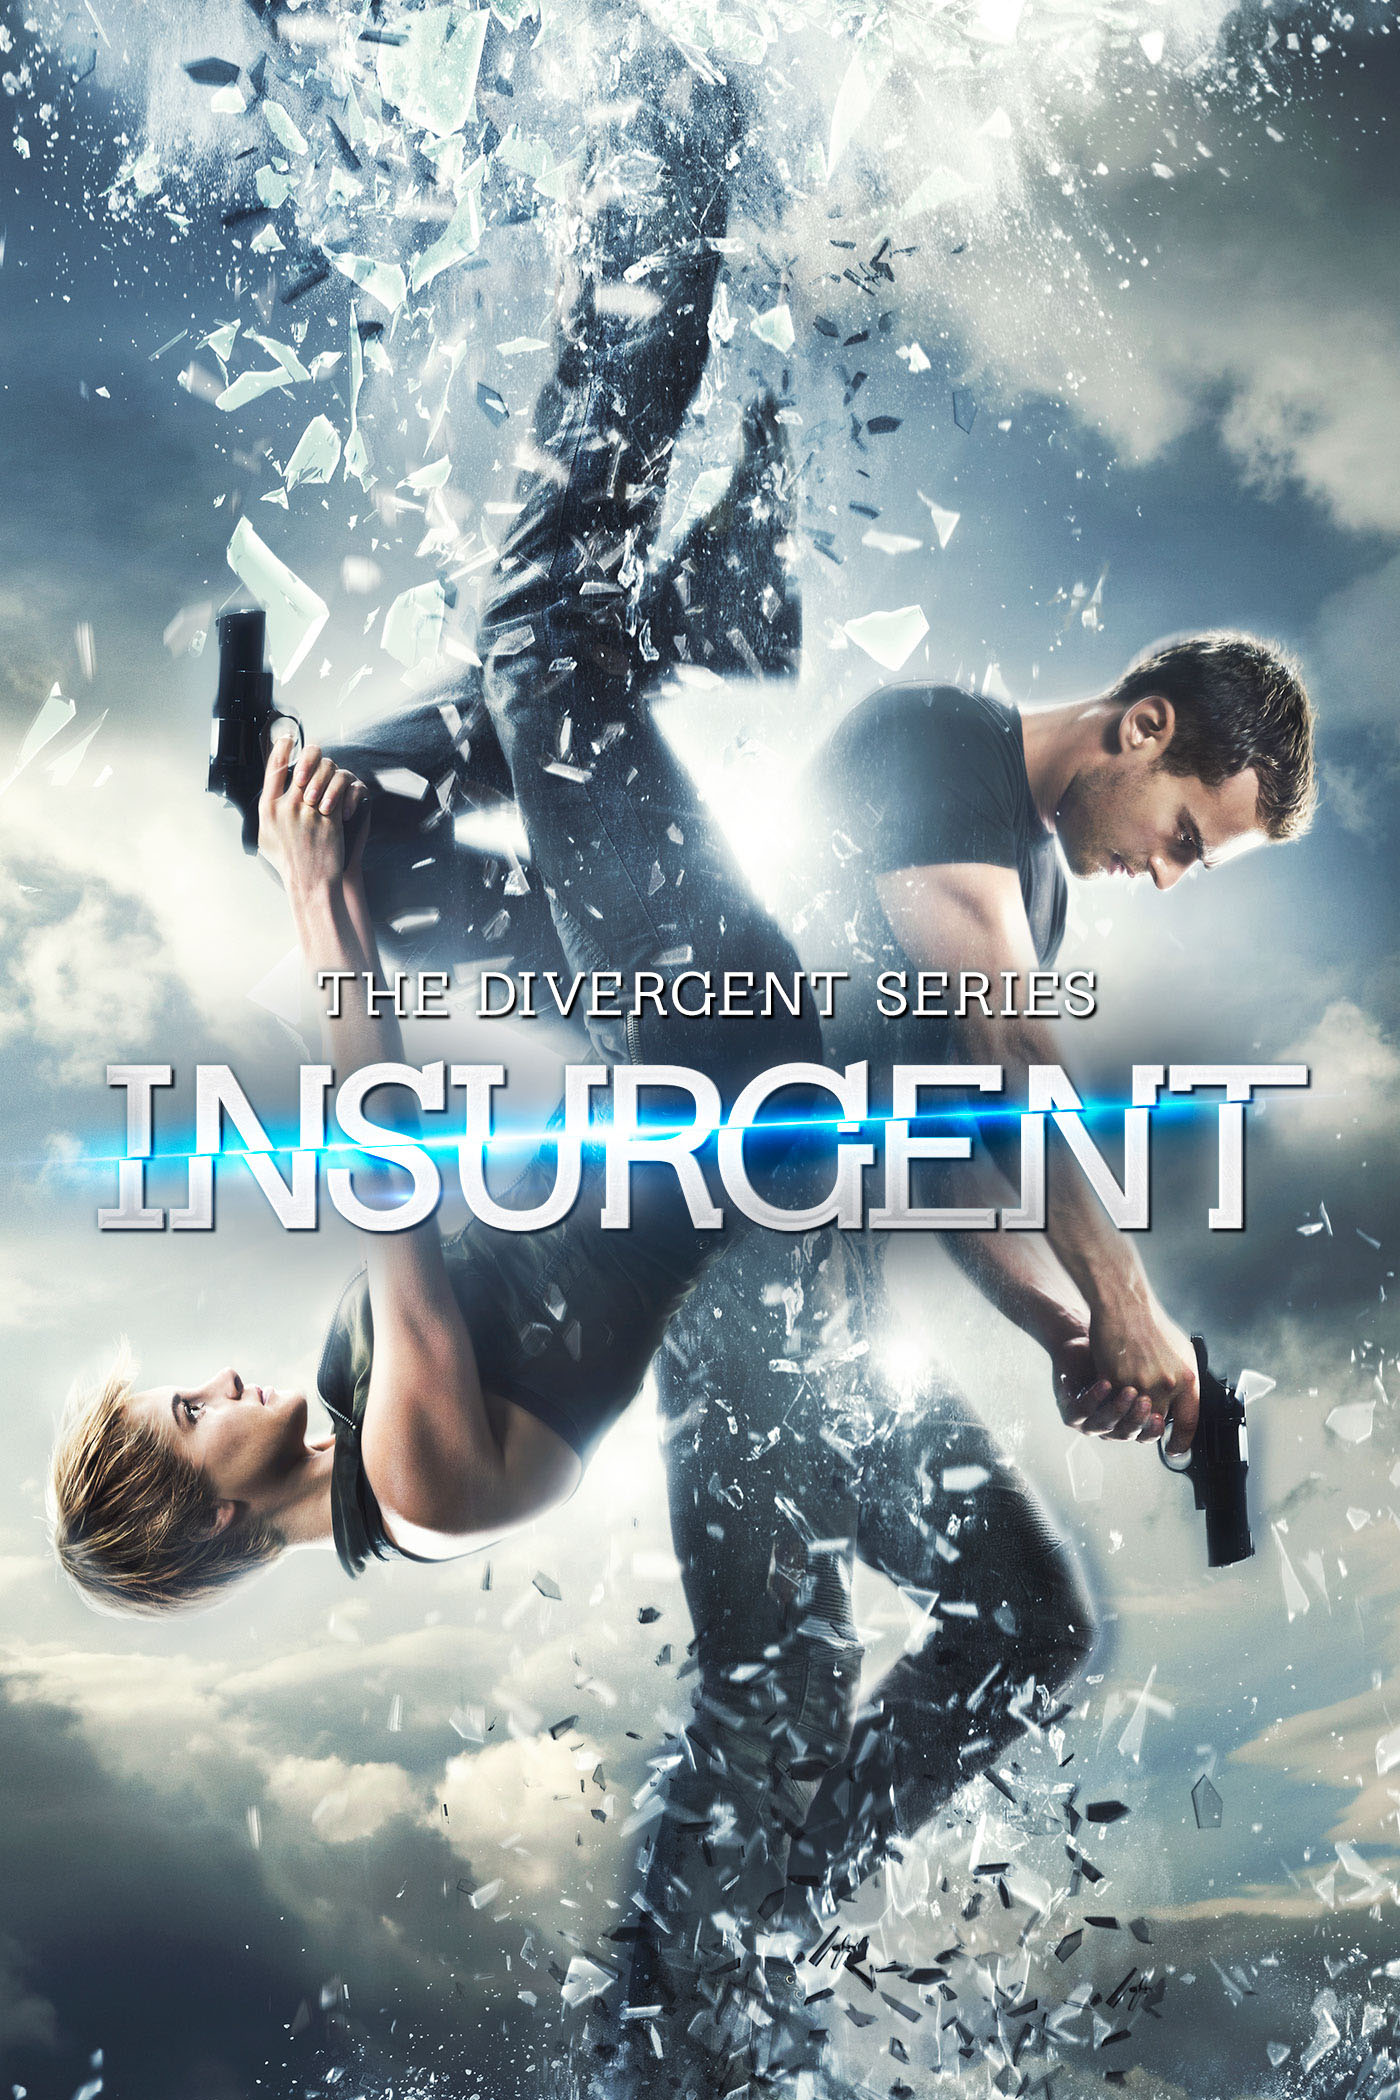 The Divergent Series: Insurgent | Buy, Rent or Watch on FandangoNOW